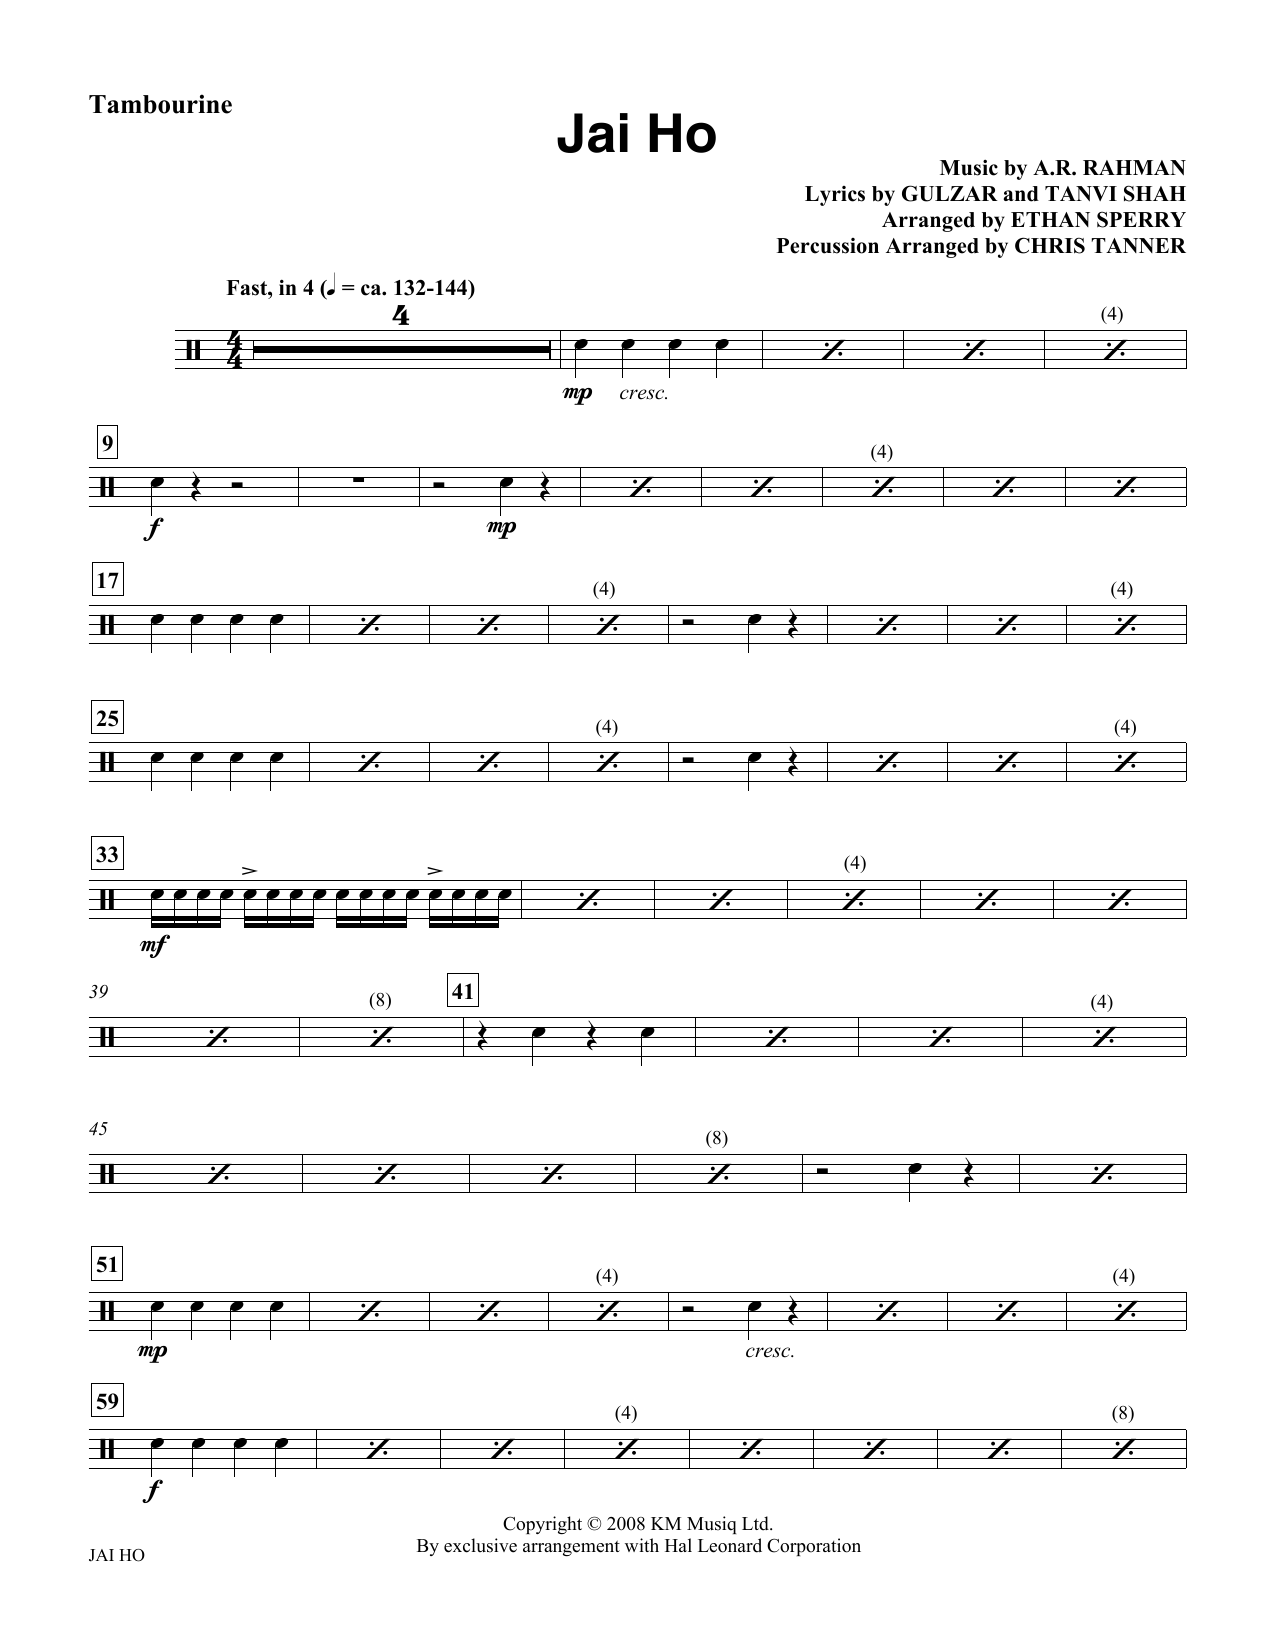 Ethan Sperry Jai Ho - Tambourine sheet music notes and chords. Download Printable PDF.